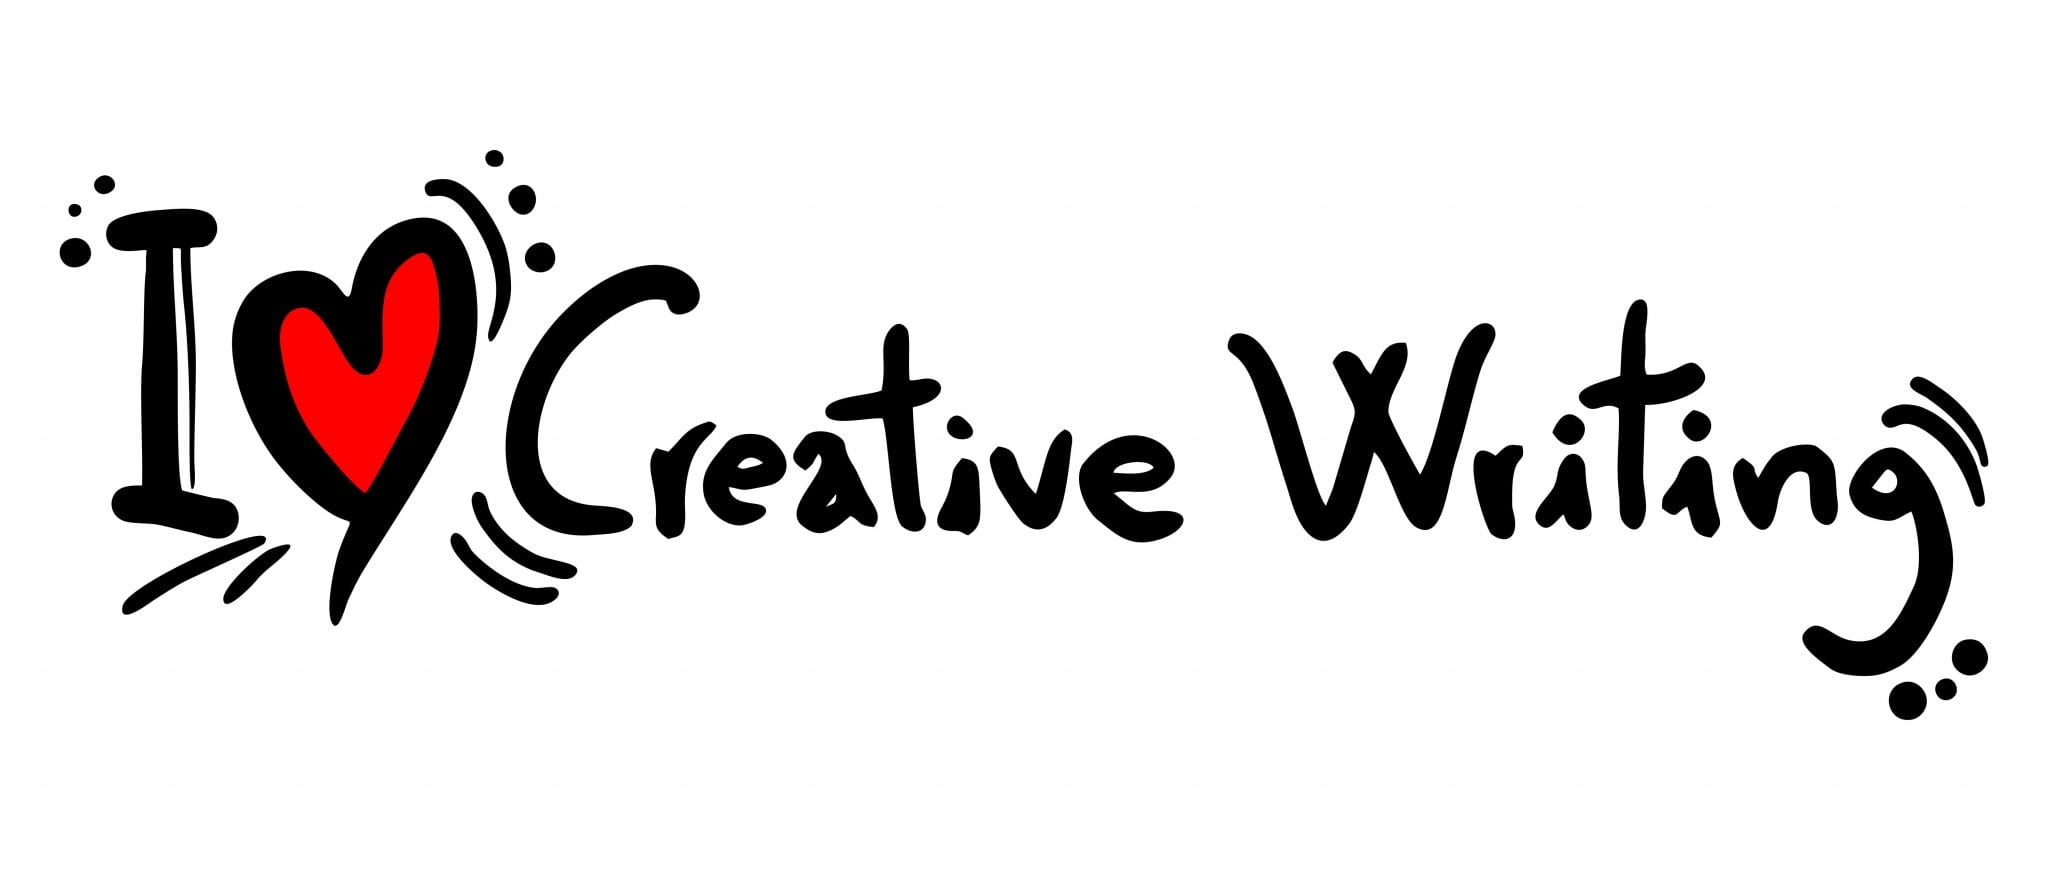 creative writings A beginner's guide to creative writing read it to know about the intro, how to get started, fiction writing, poetry writing, creative nonfiction, and more.